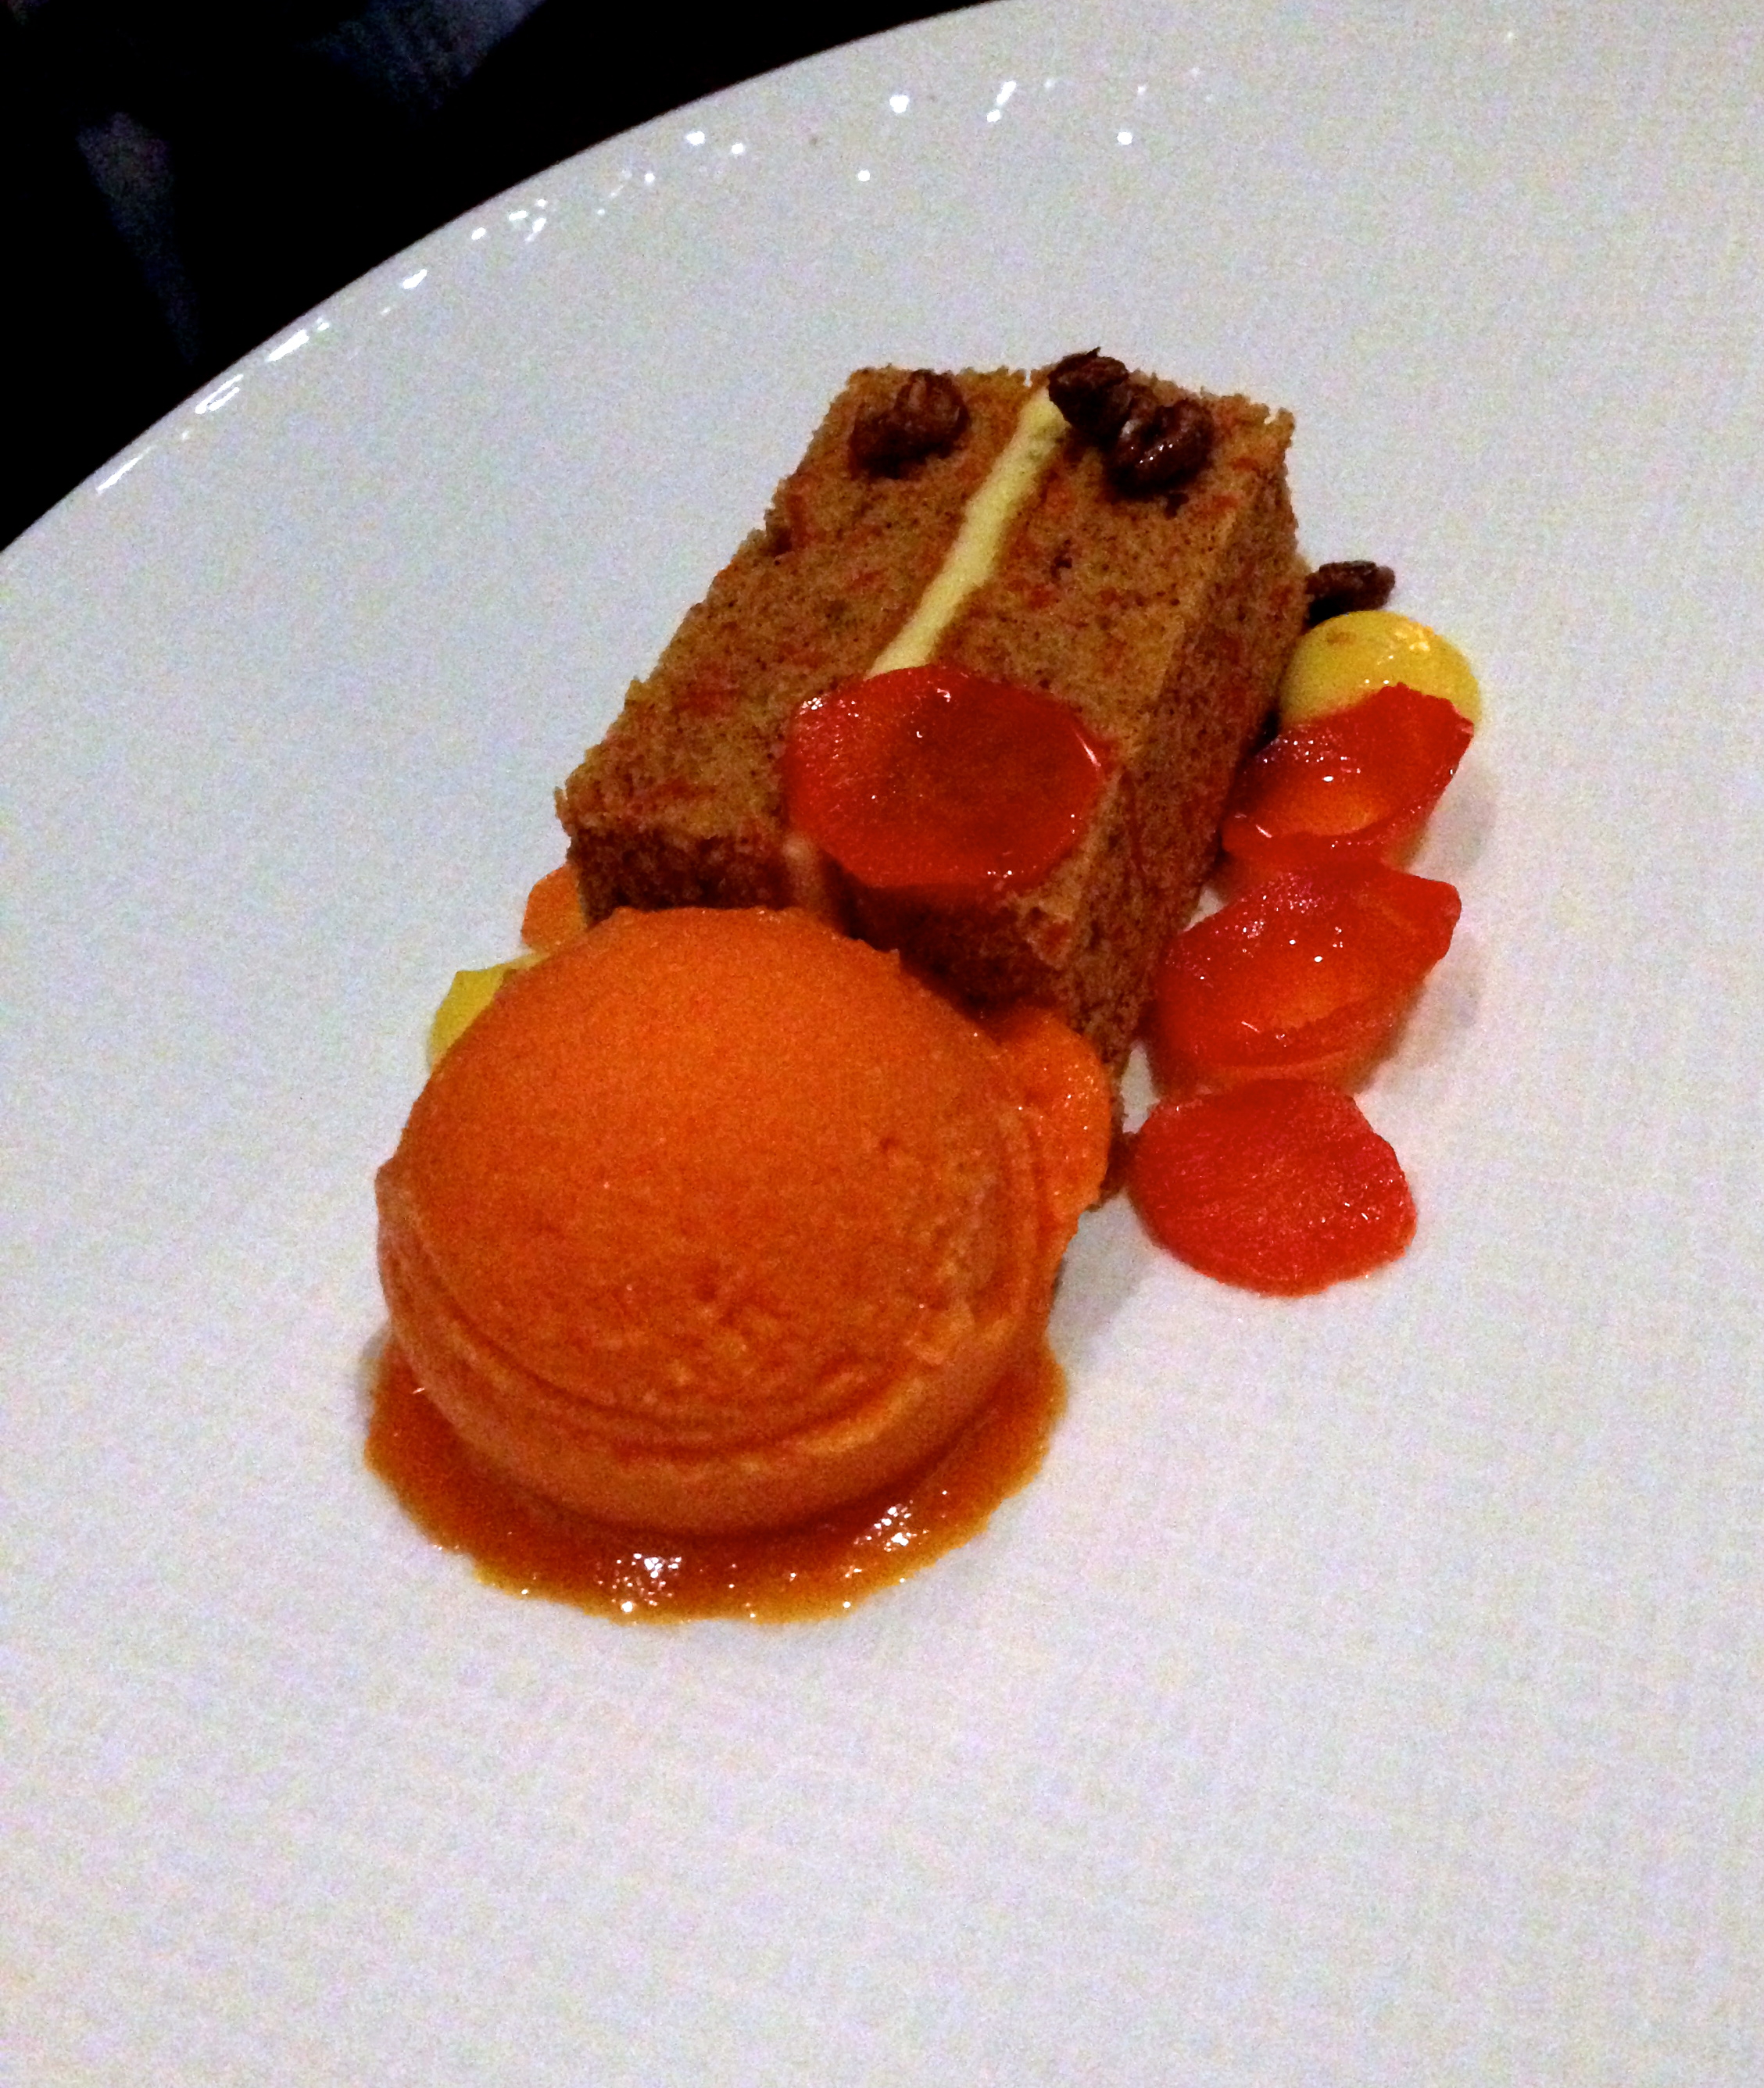 Figure 13. Black walnut carrot cake with carrot sorbet